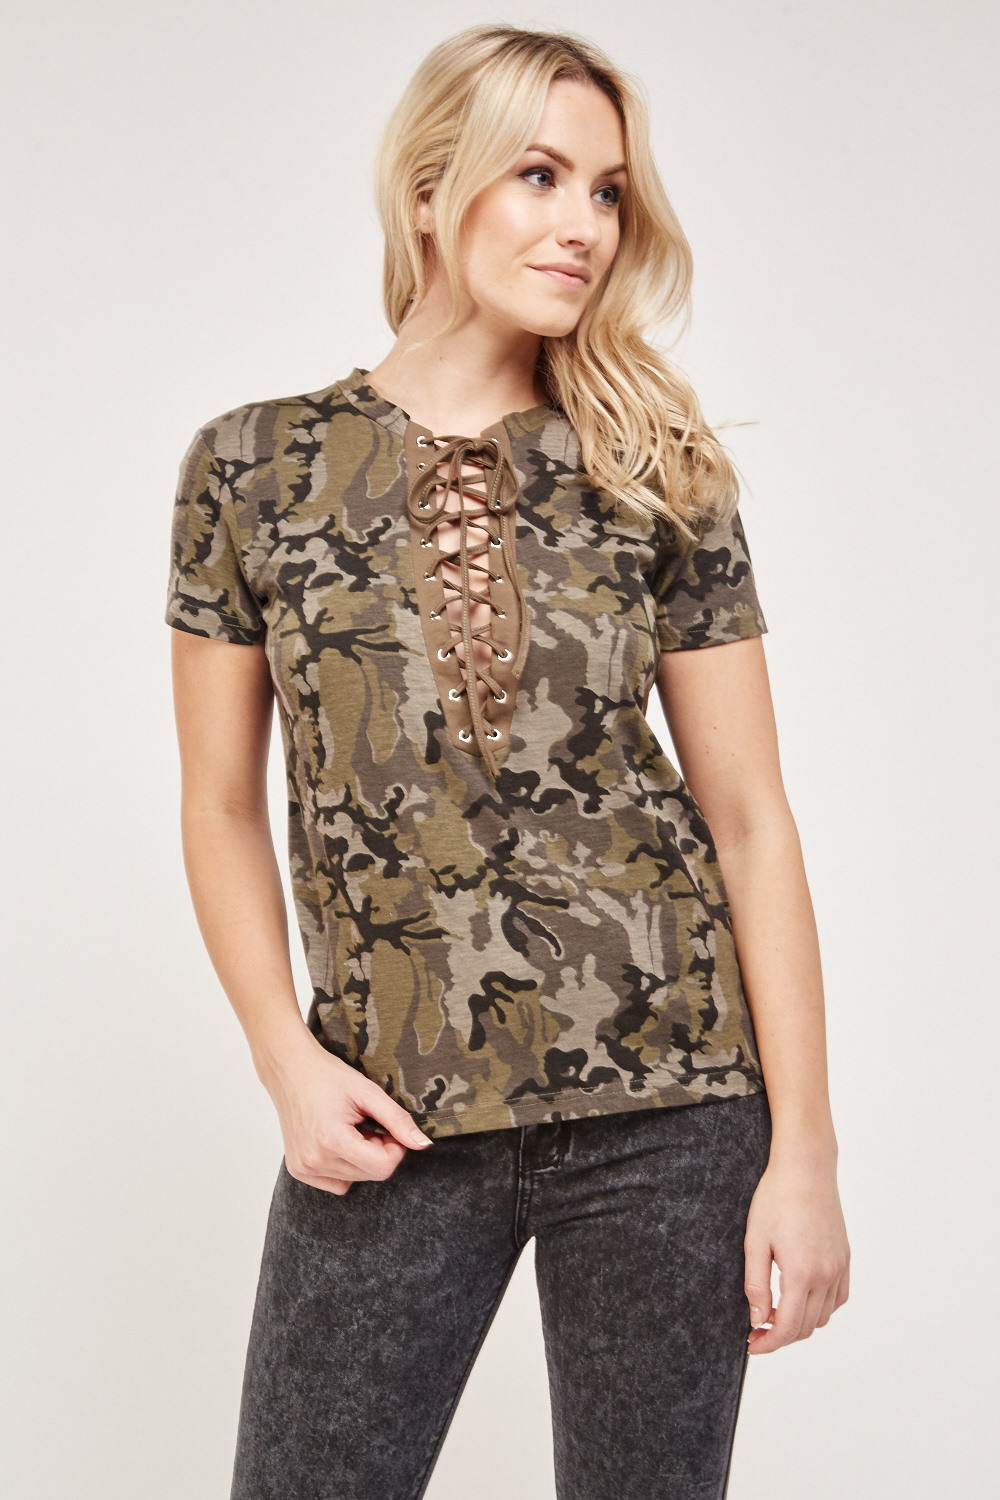 05ae5d81d4 Camouflage Lace Up Front Top. £5.00. ColourOlive Multi